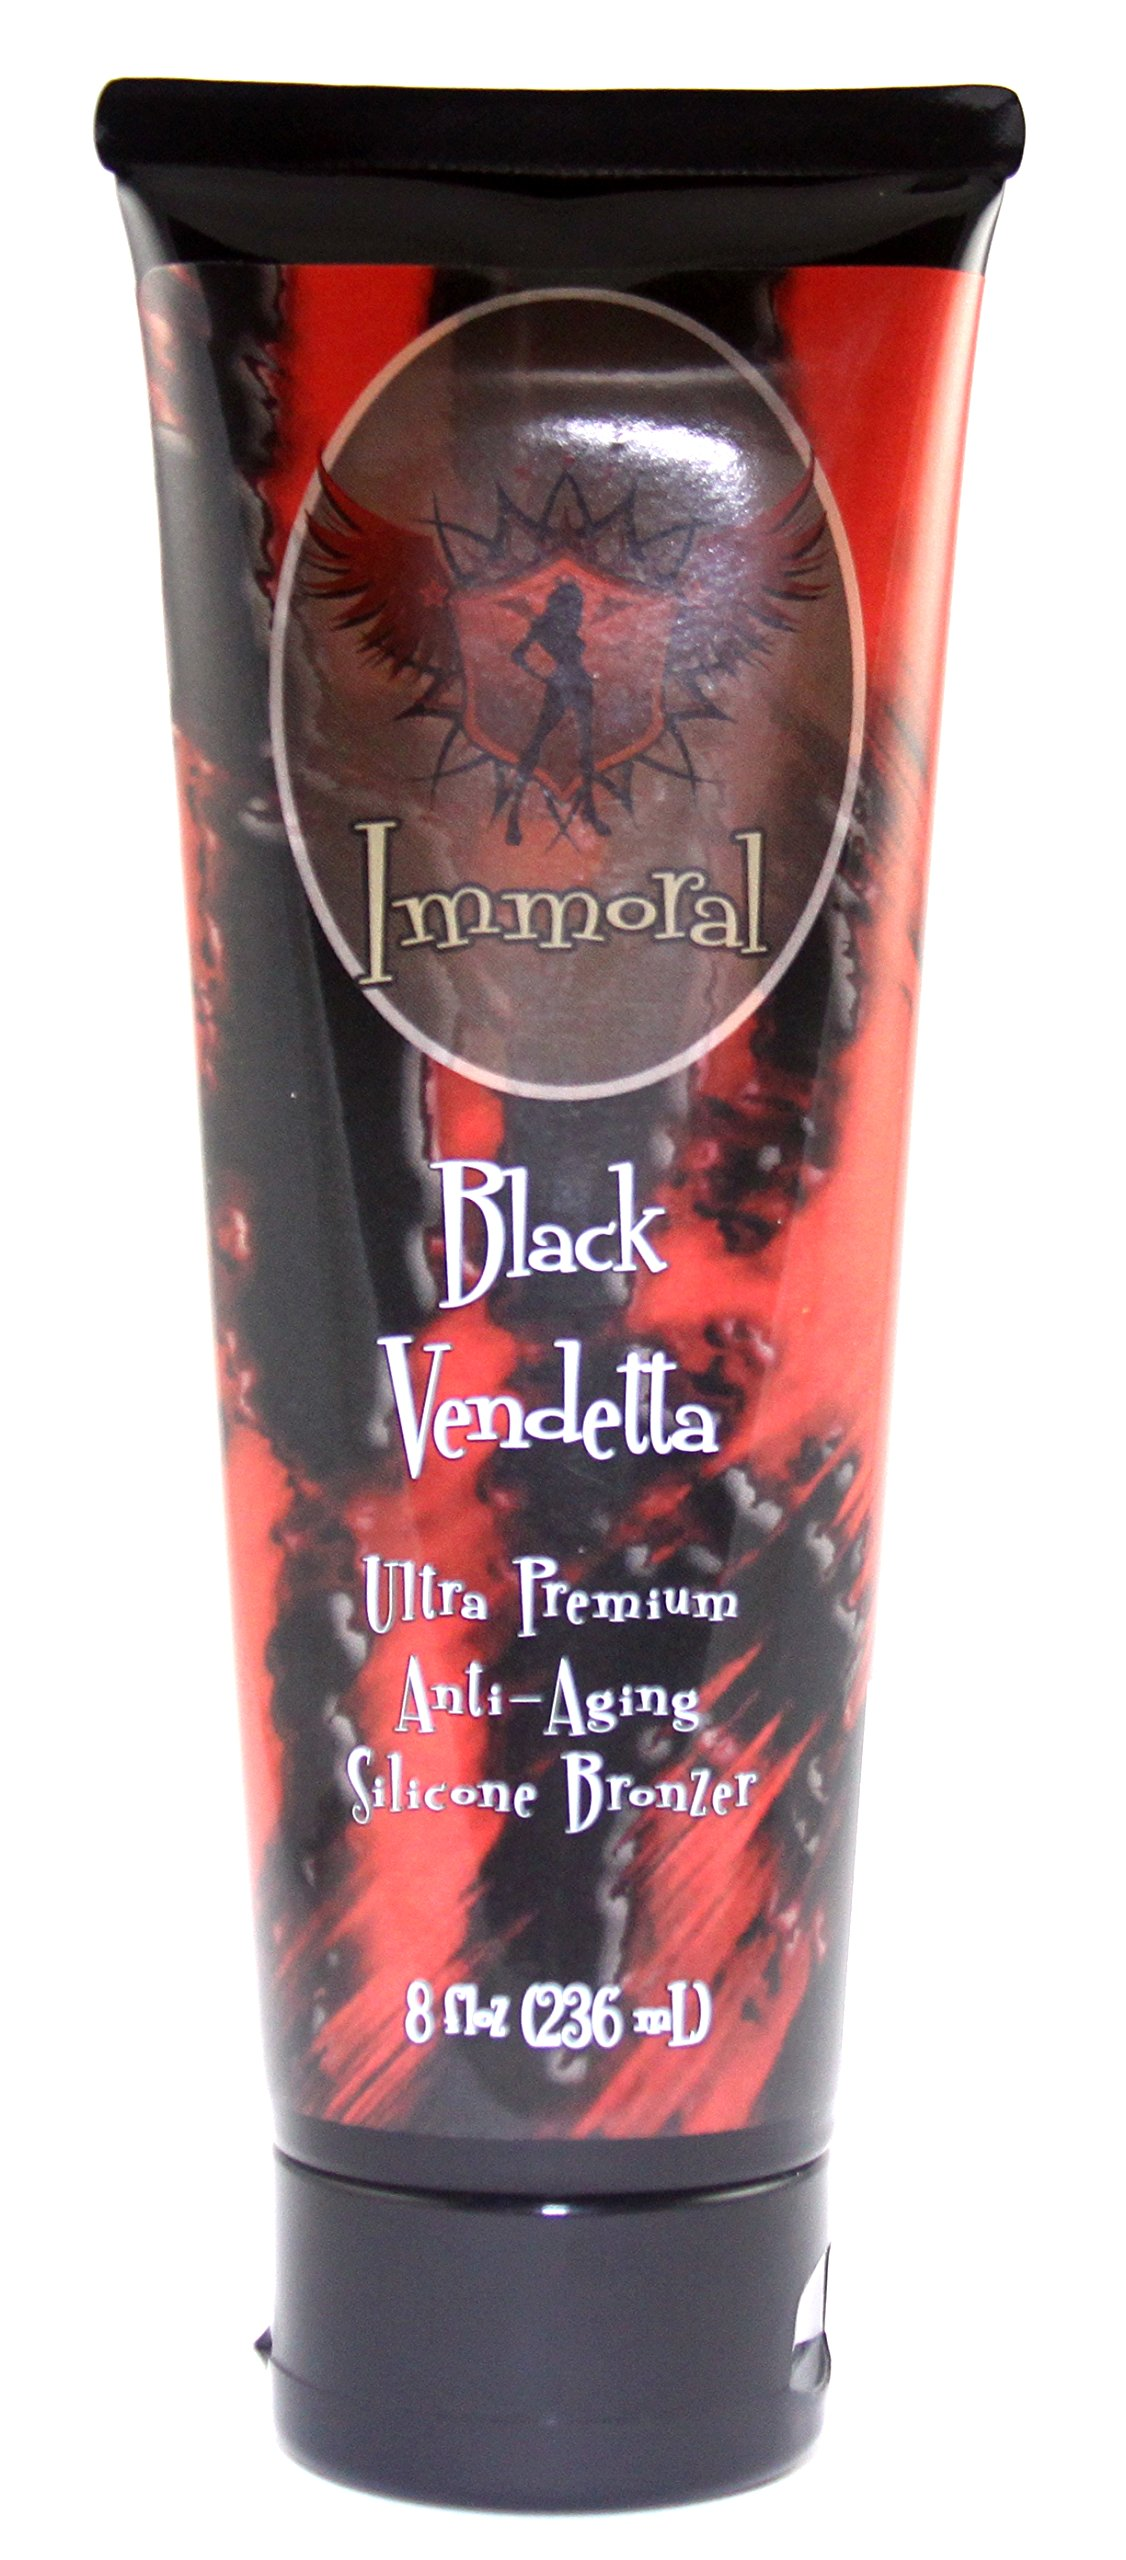 Immoral Black Vendetta 300XX Advanced Tanning Lotion Bronzer | Dark Streak Free Tattoo Safe Anti-Aging Peptide Outdoor/Indoor Tanning Bed Tan Accelerator, Intensifier, Maximizer, Bronzing Lotion,8Oz by Immoral Tanning Lotion (Image #1)